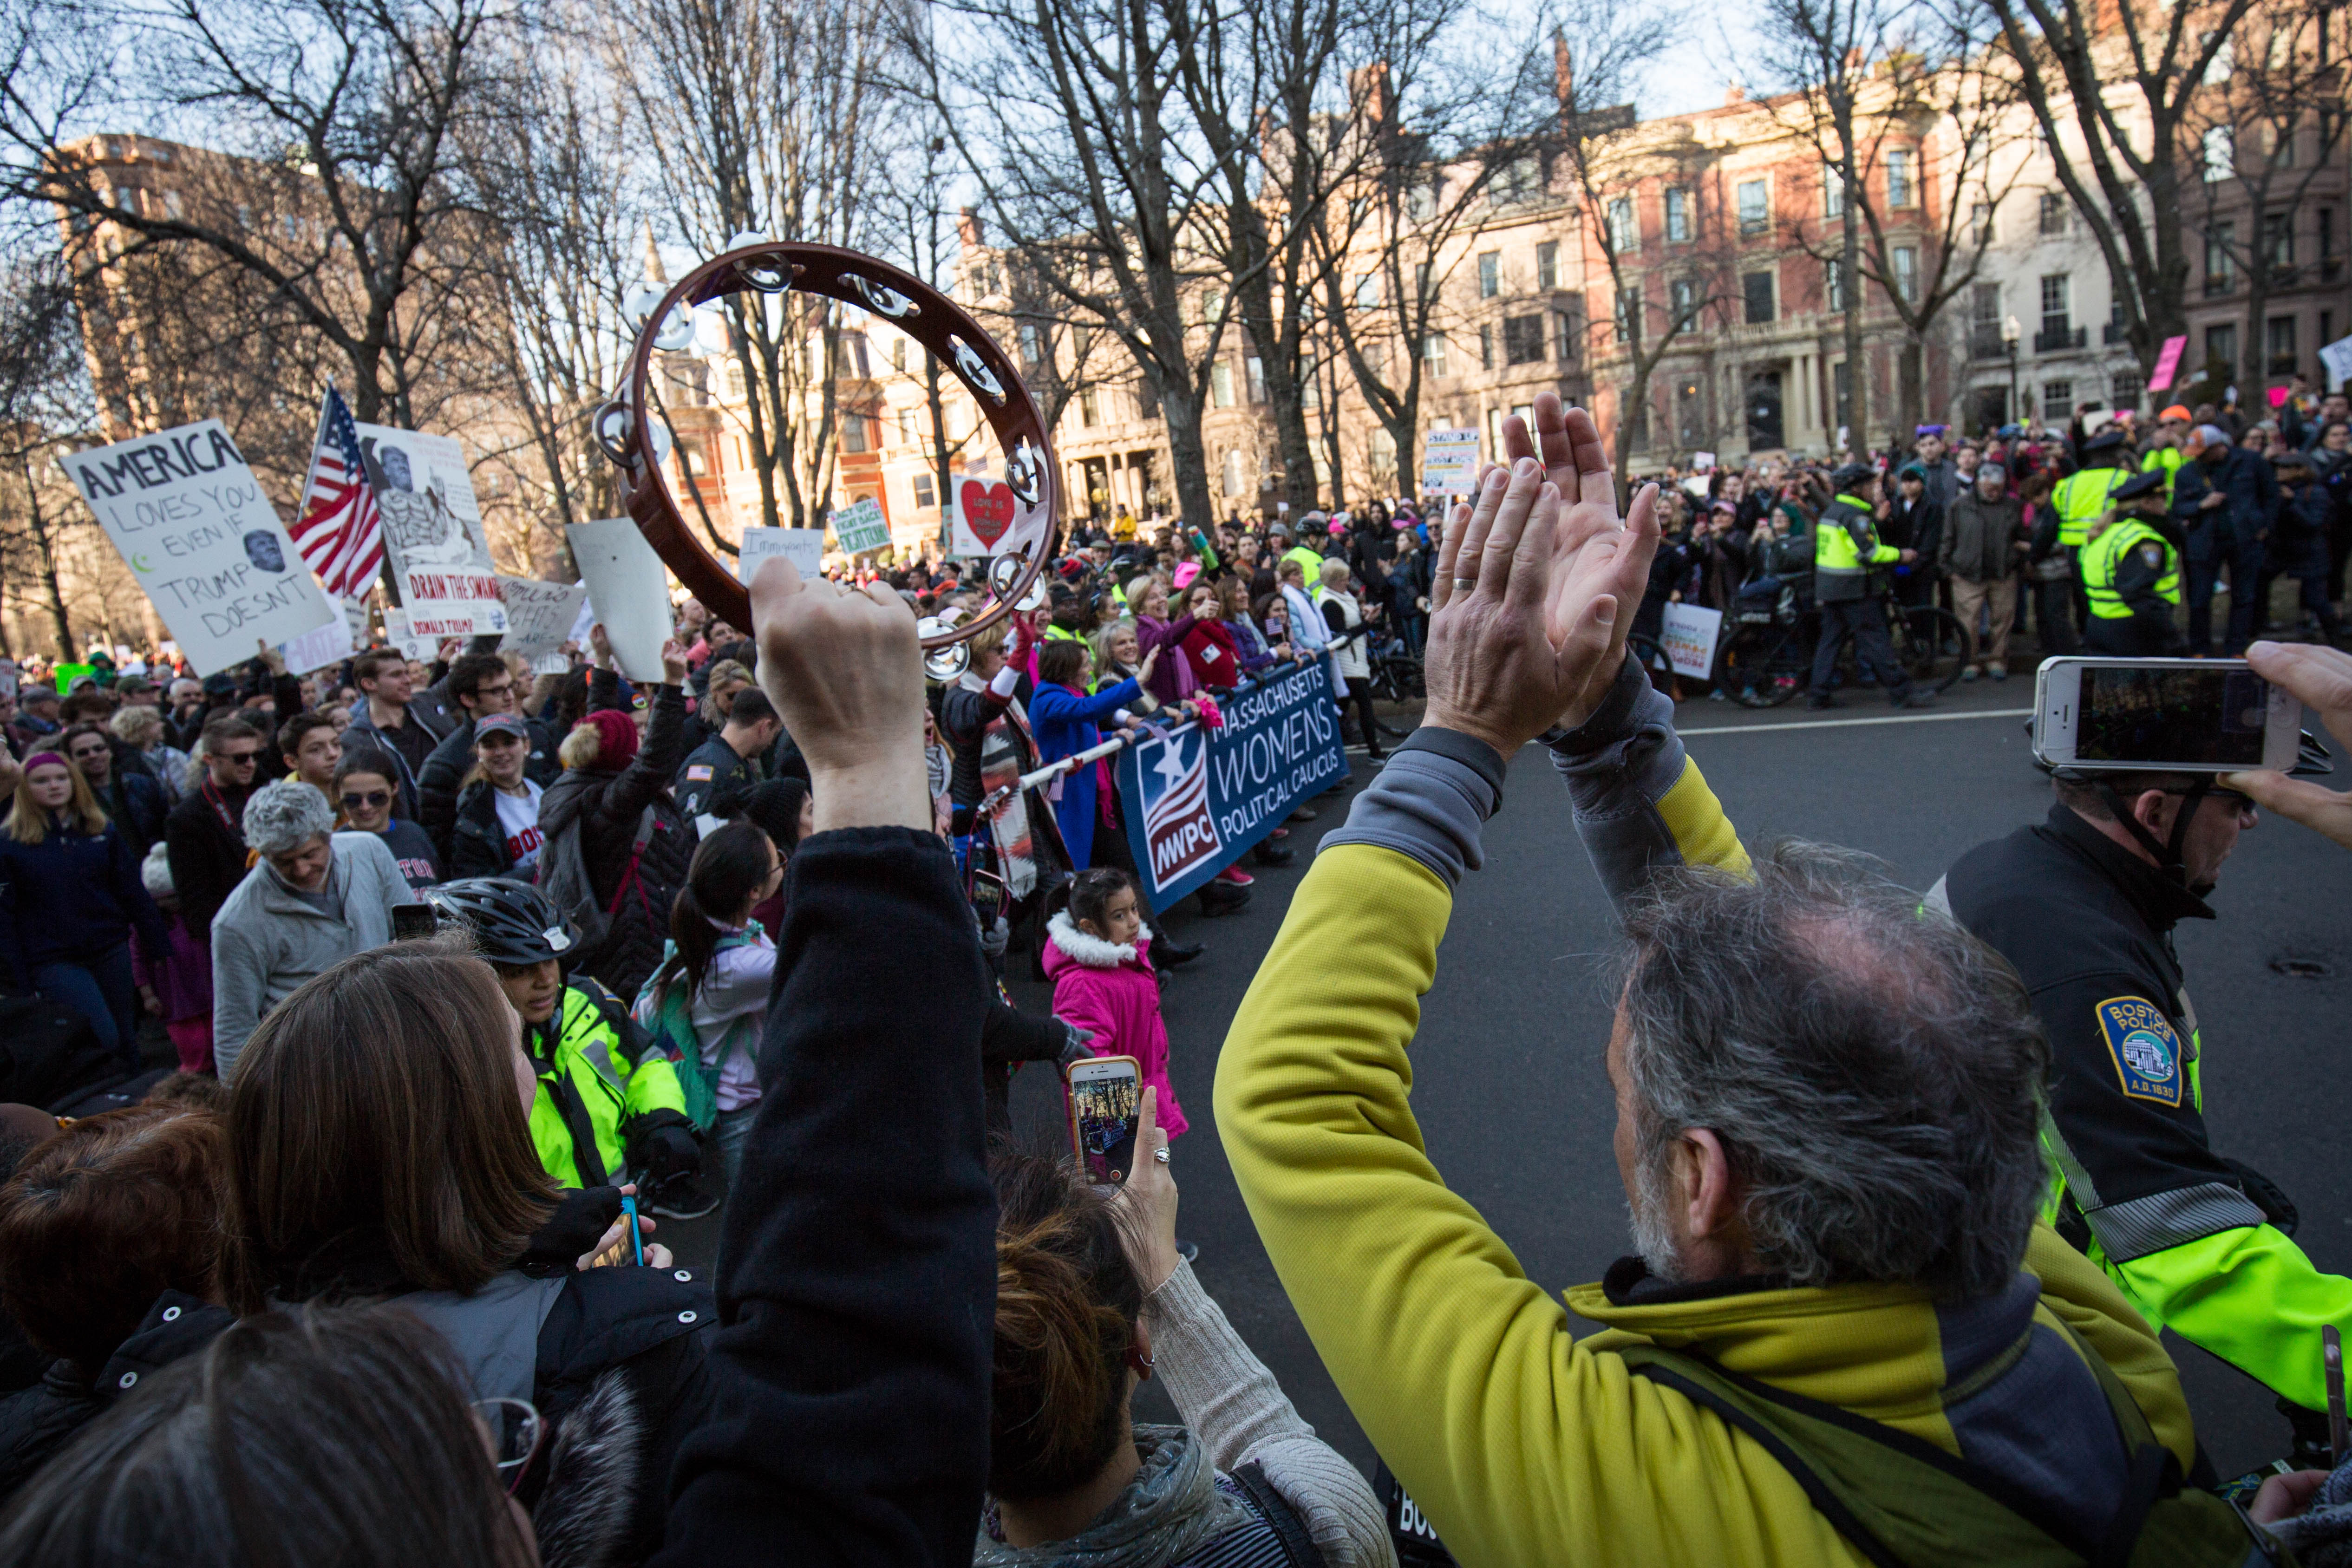 Protesters play the tambourine as a band comes through the city of Boston on Jan. 21, 2017. (Photo by Alastair Pike)